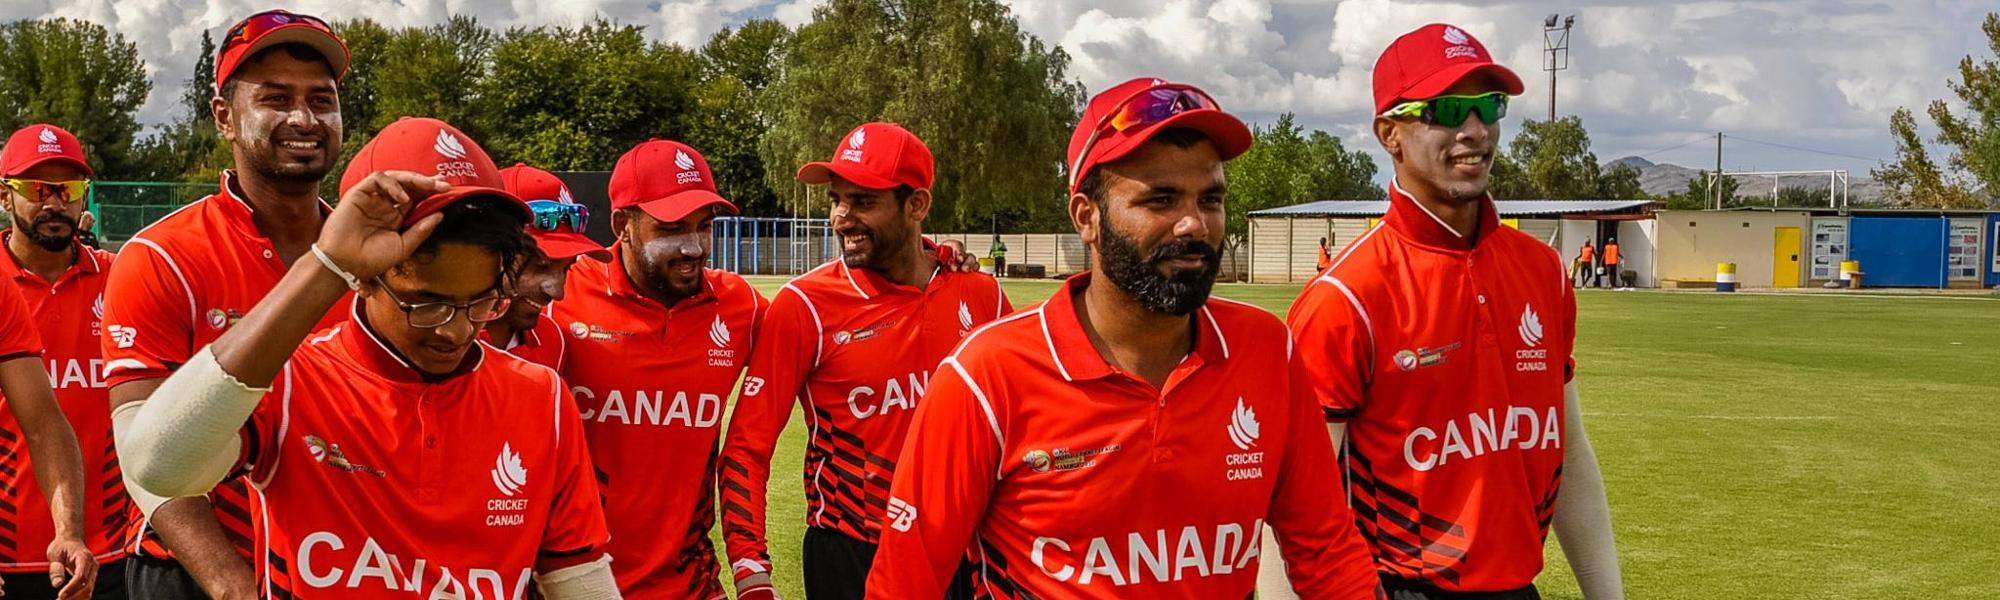 Monty Desai Appointed Canada Head Coach Ahead Of Wcl Division 2